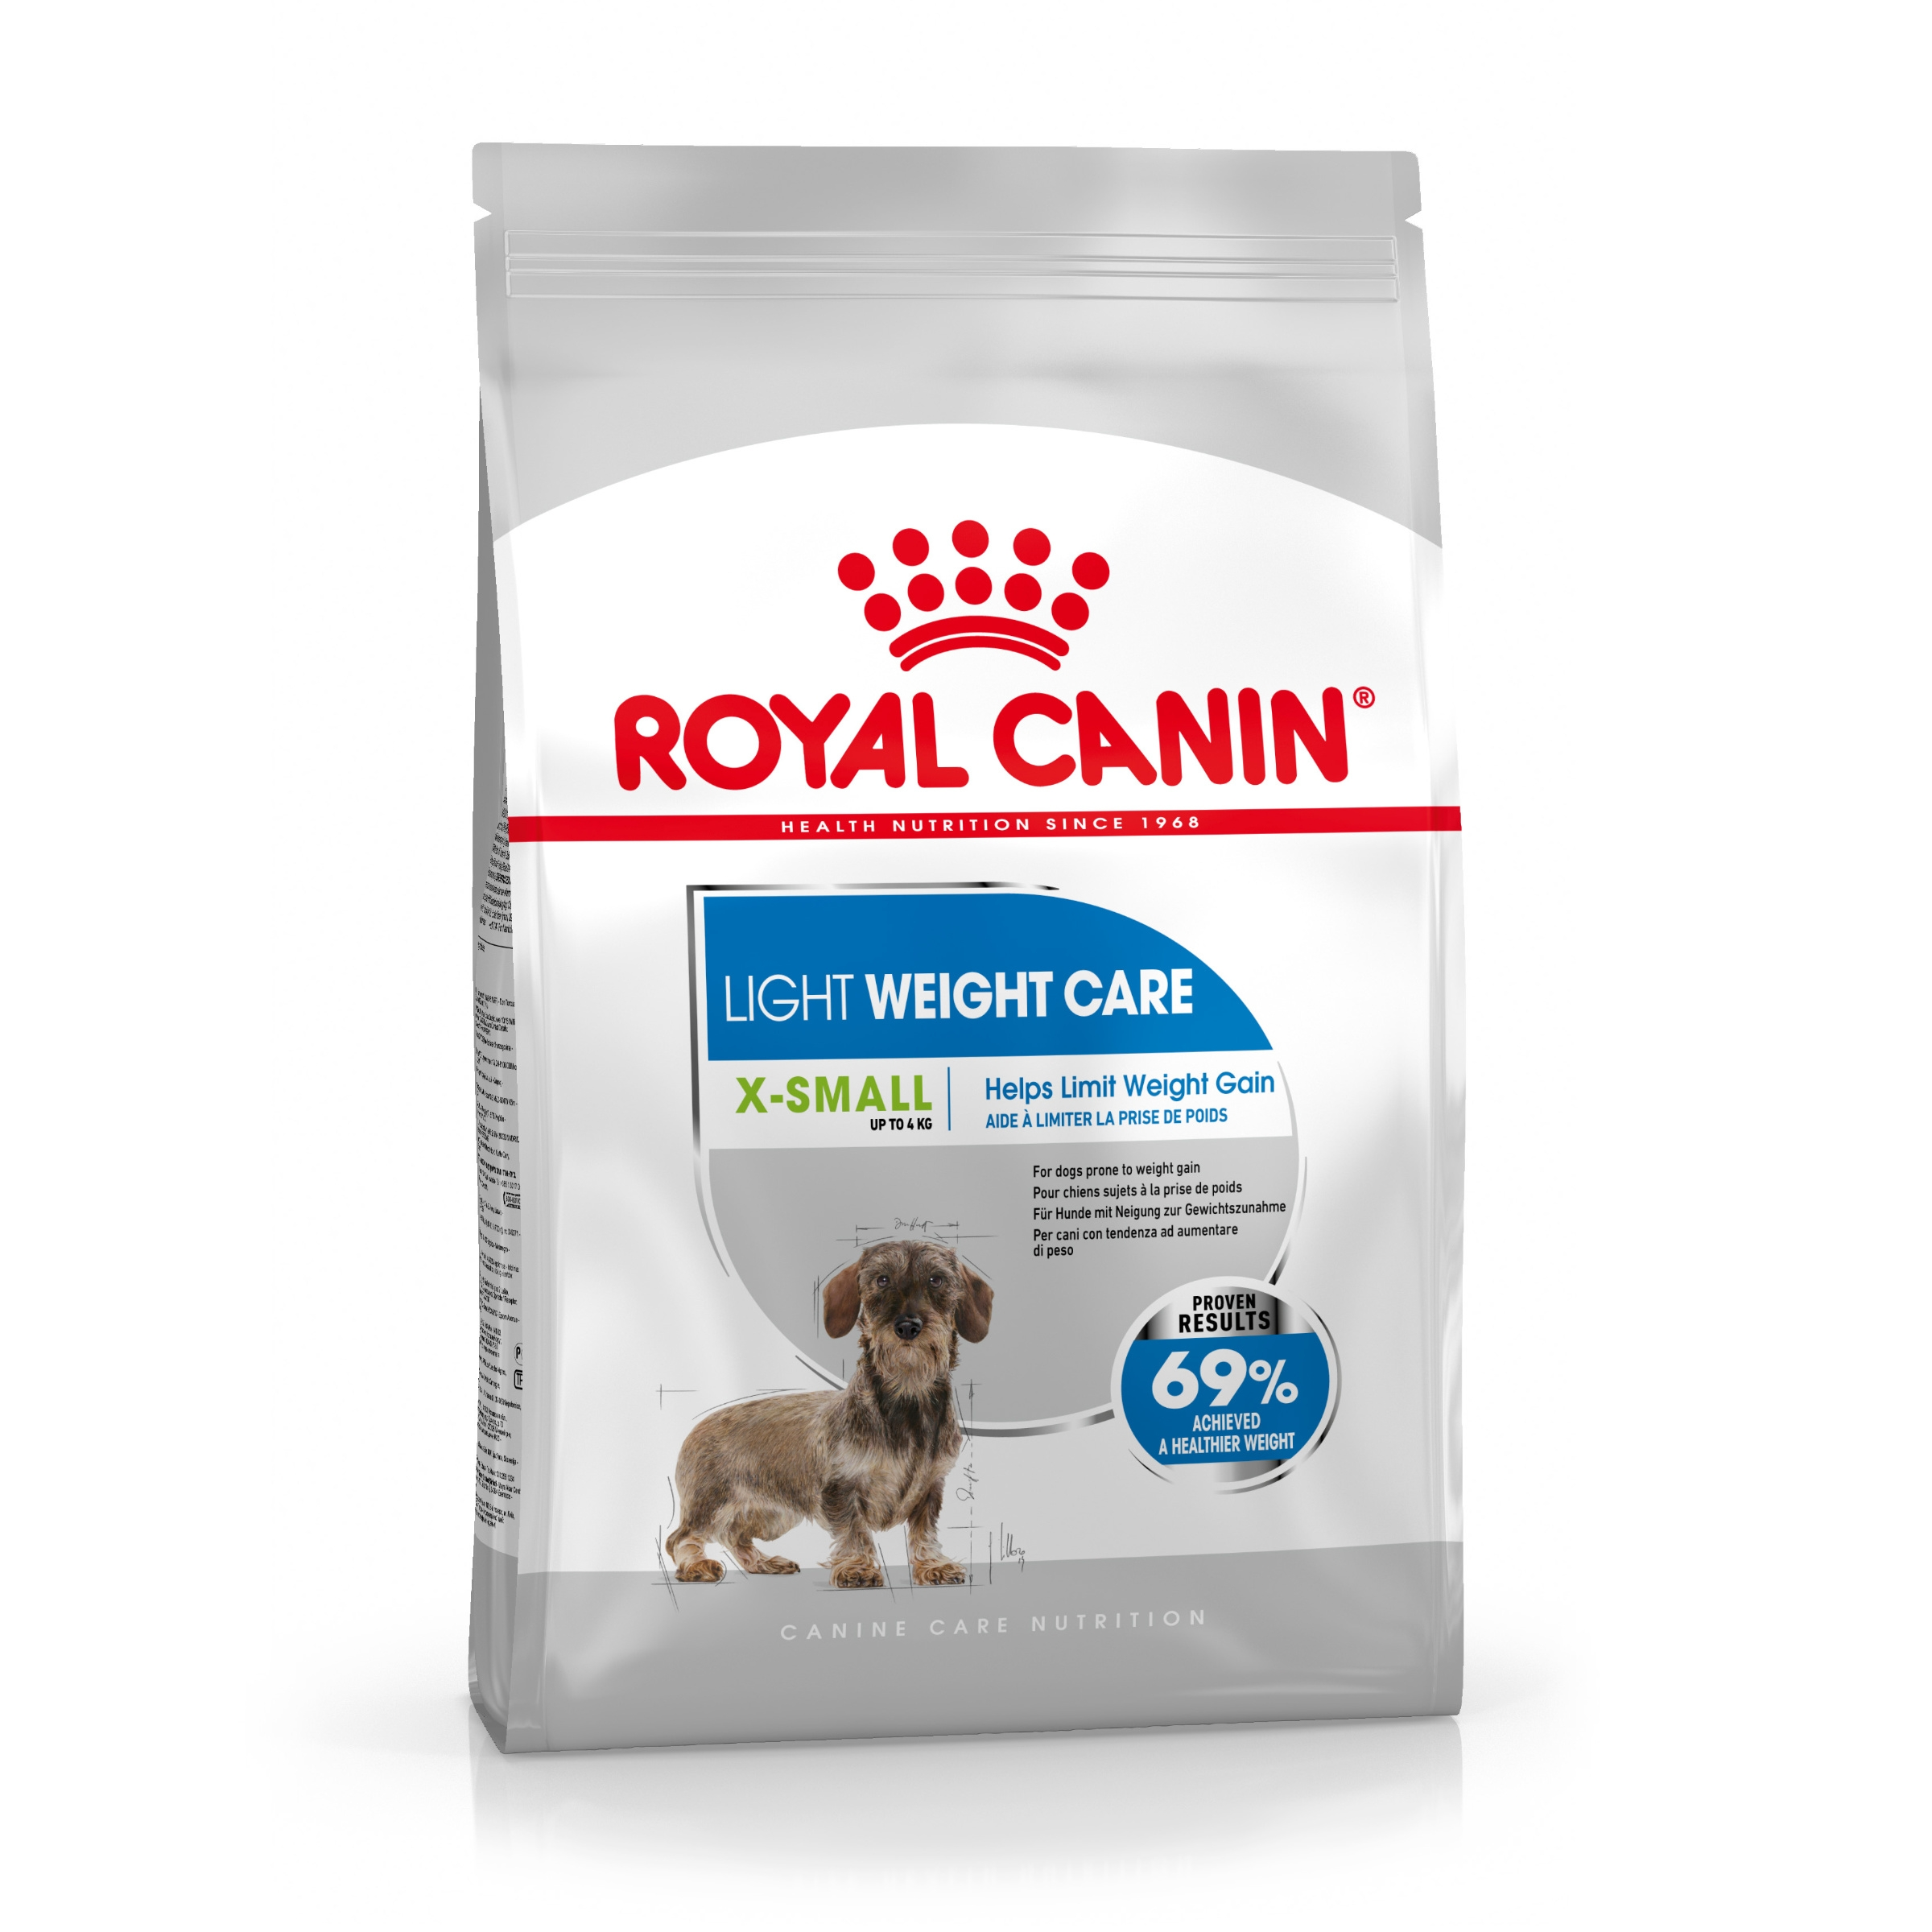 Royal Canin X-Small Light Weight Care, 1.5 kg imagine